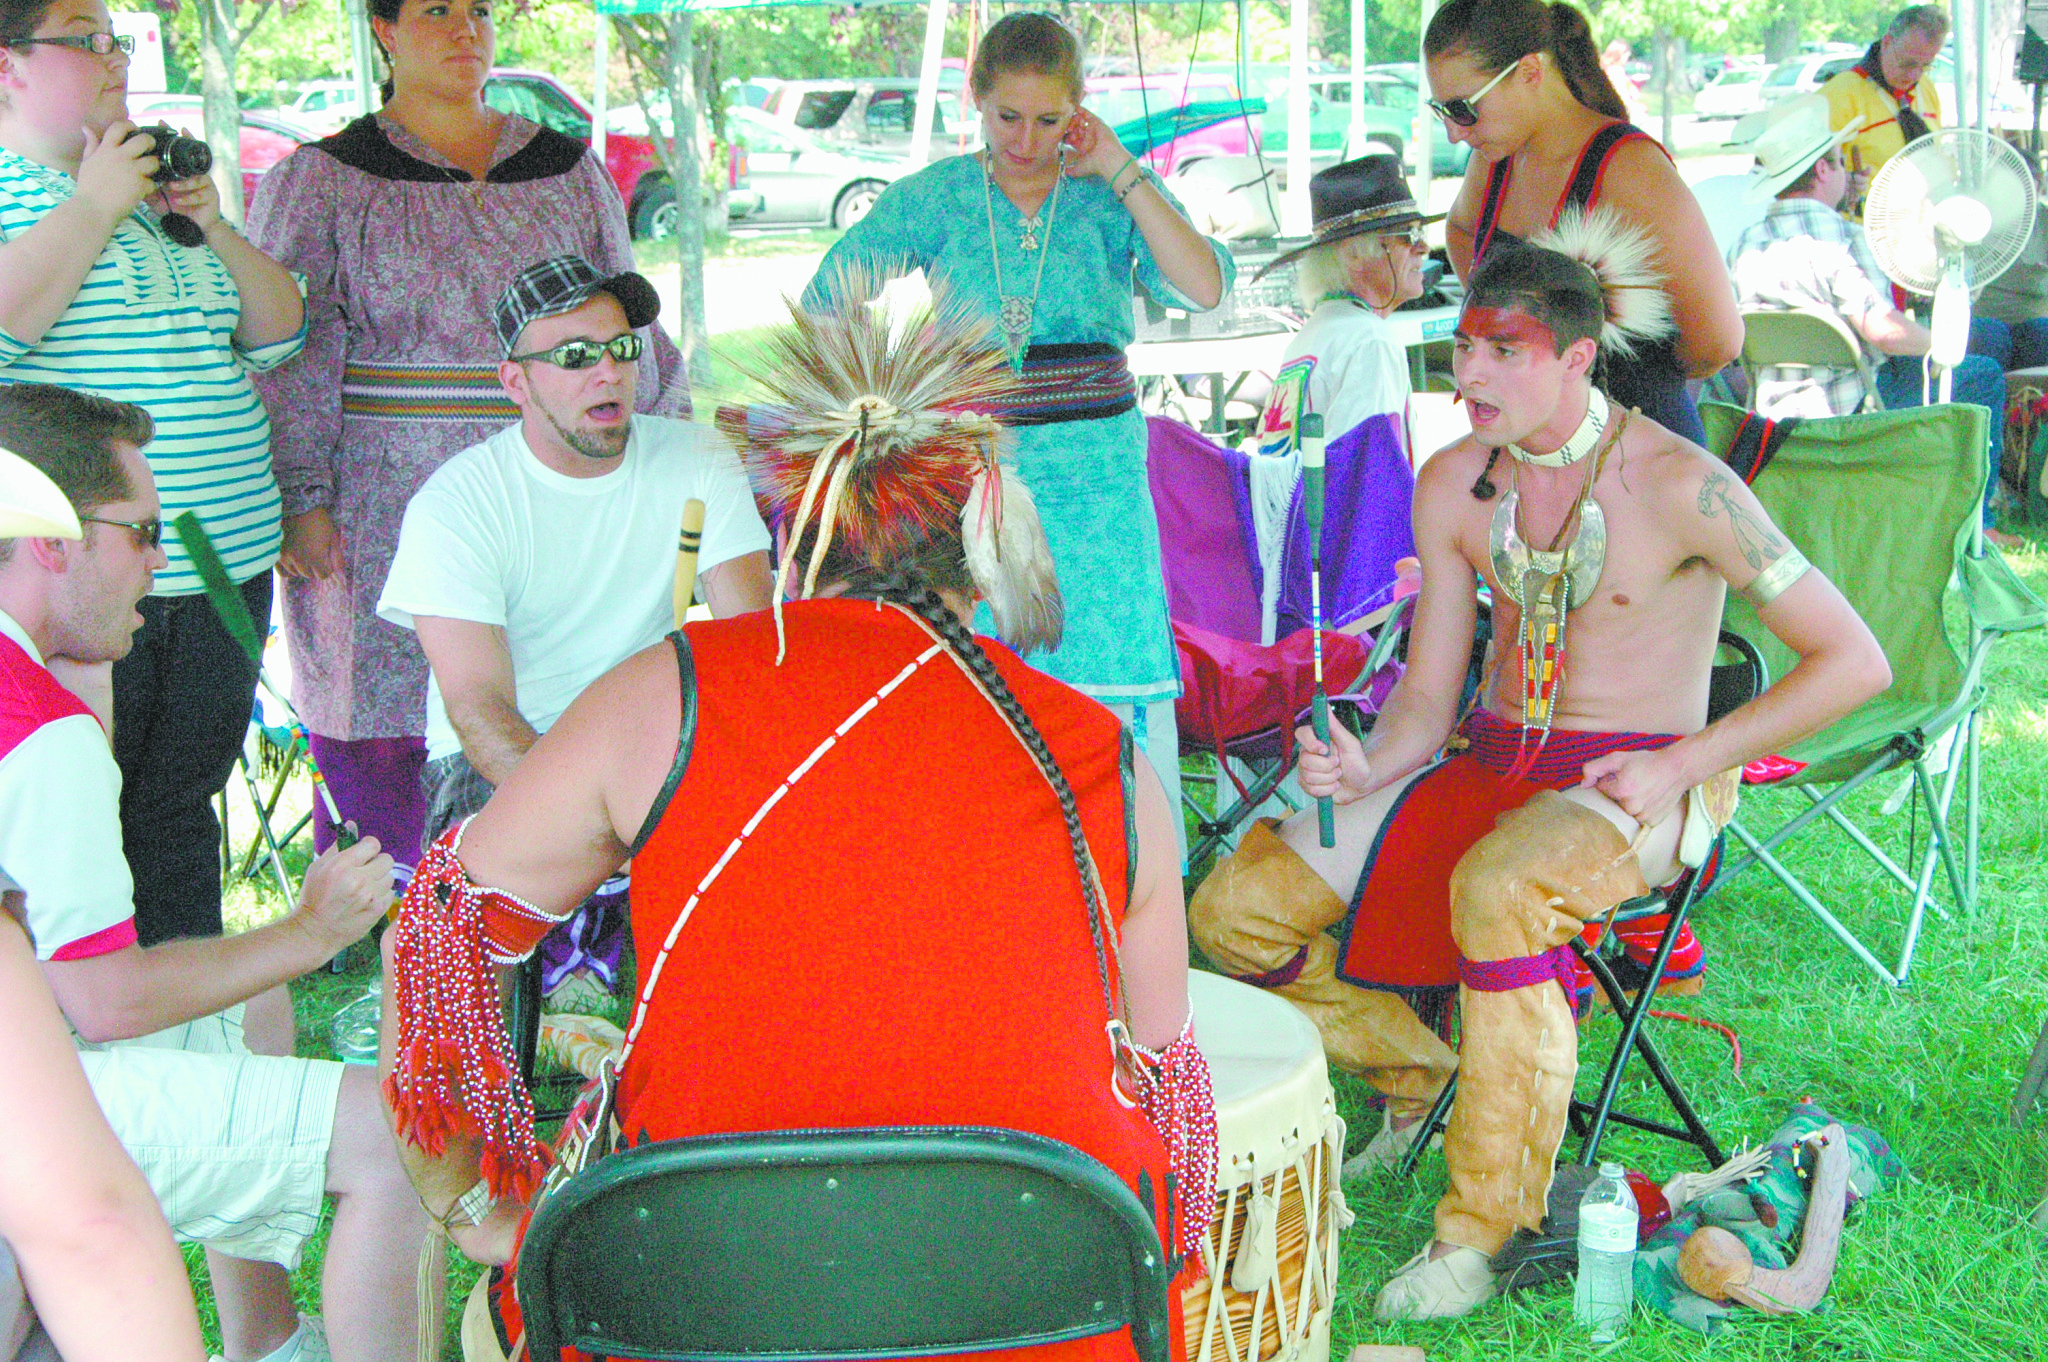 Annual Powwow this weeekend in Whitehall